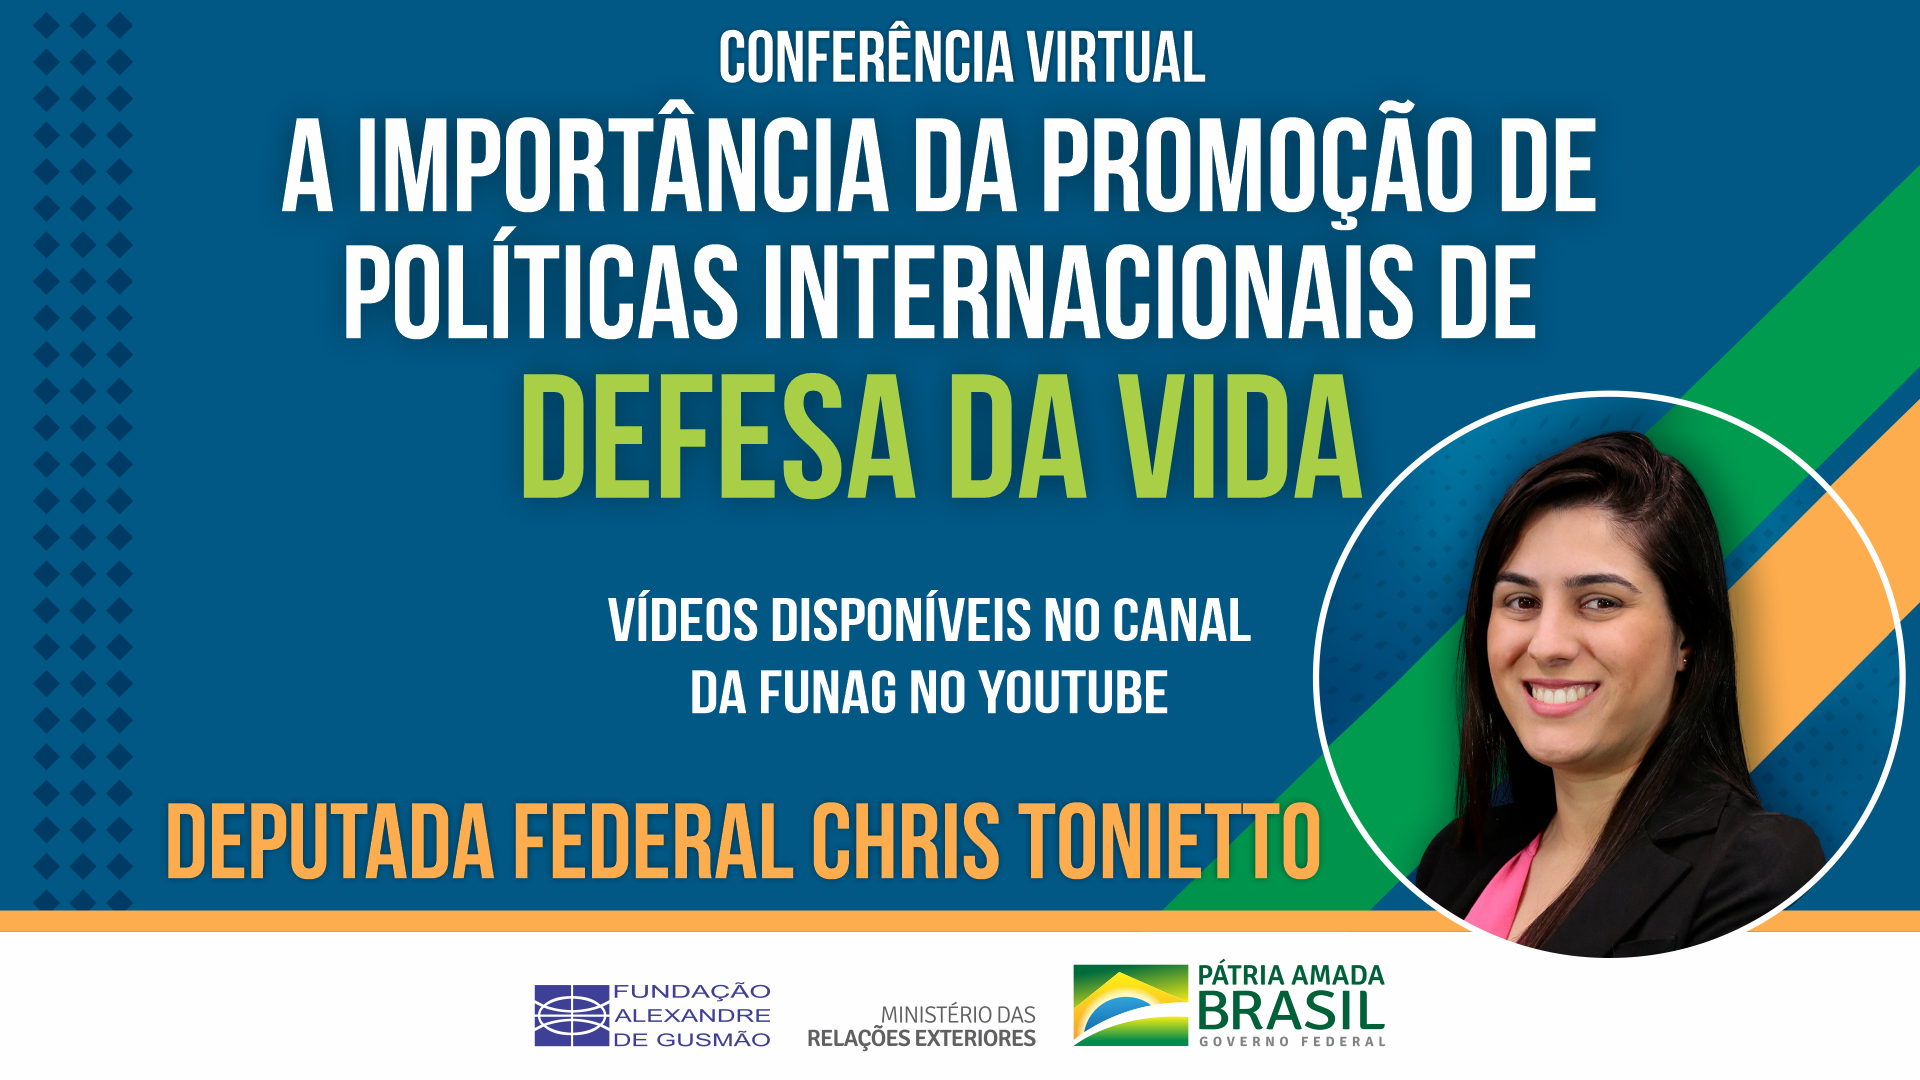 Watch the videos of the conference on the importance of the promotion of international policies for the defense of life, with Congresswoman Chris Tonietto